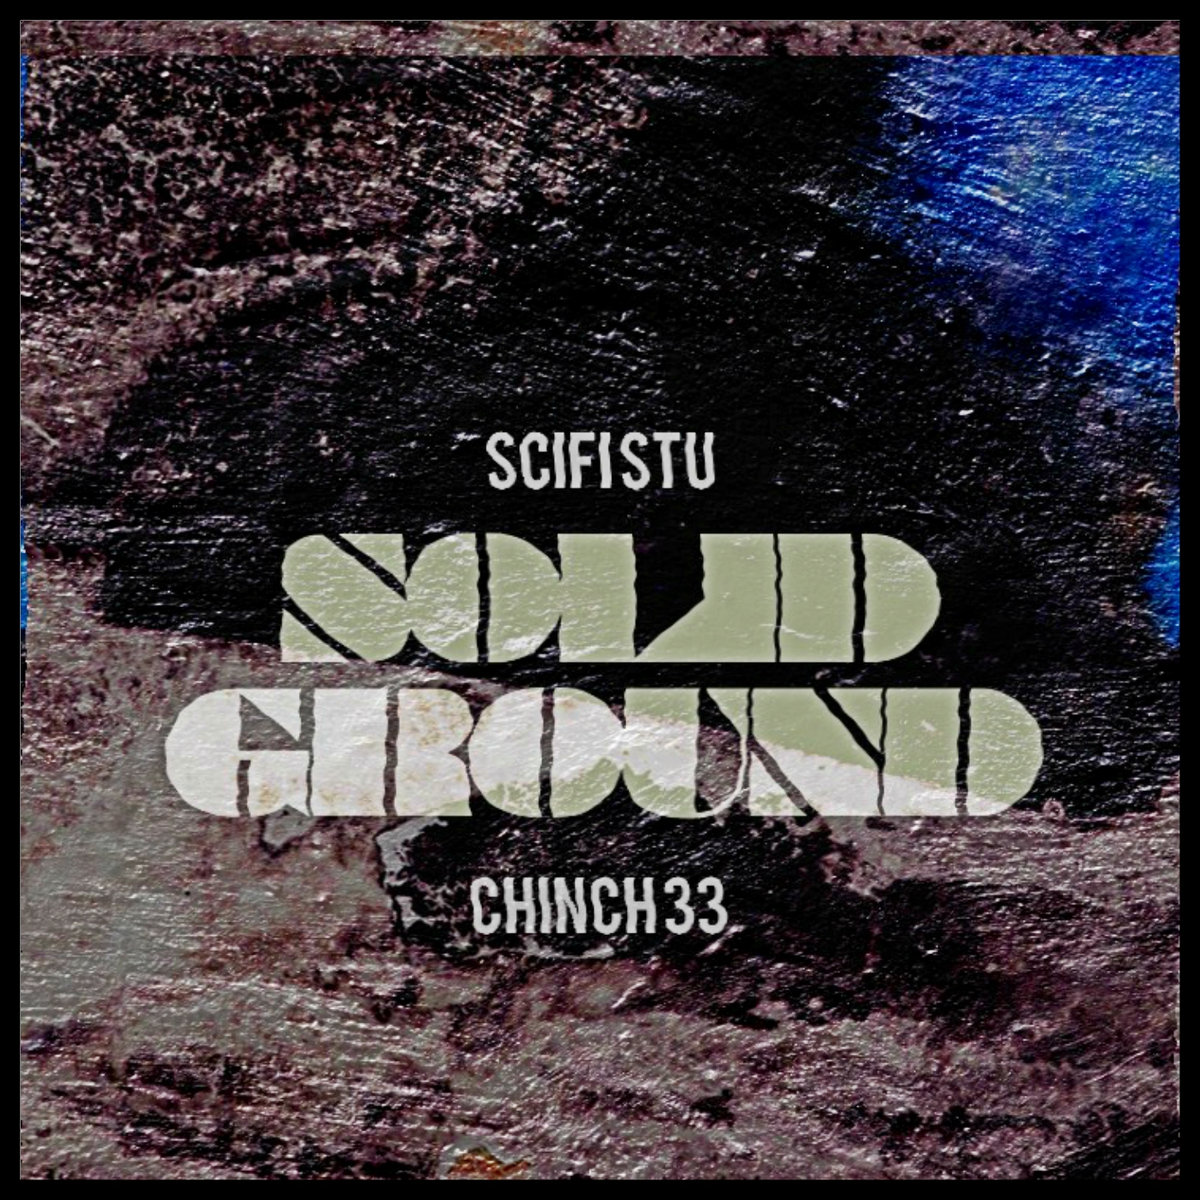 Scifi_stu___chinch_33_presentan__solid_ground_ep_